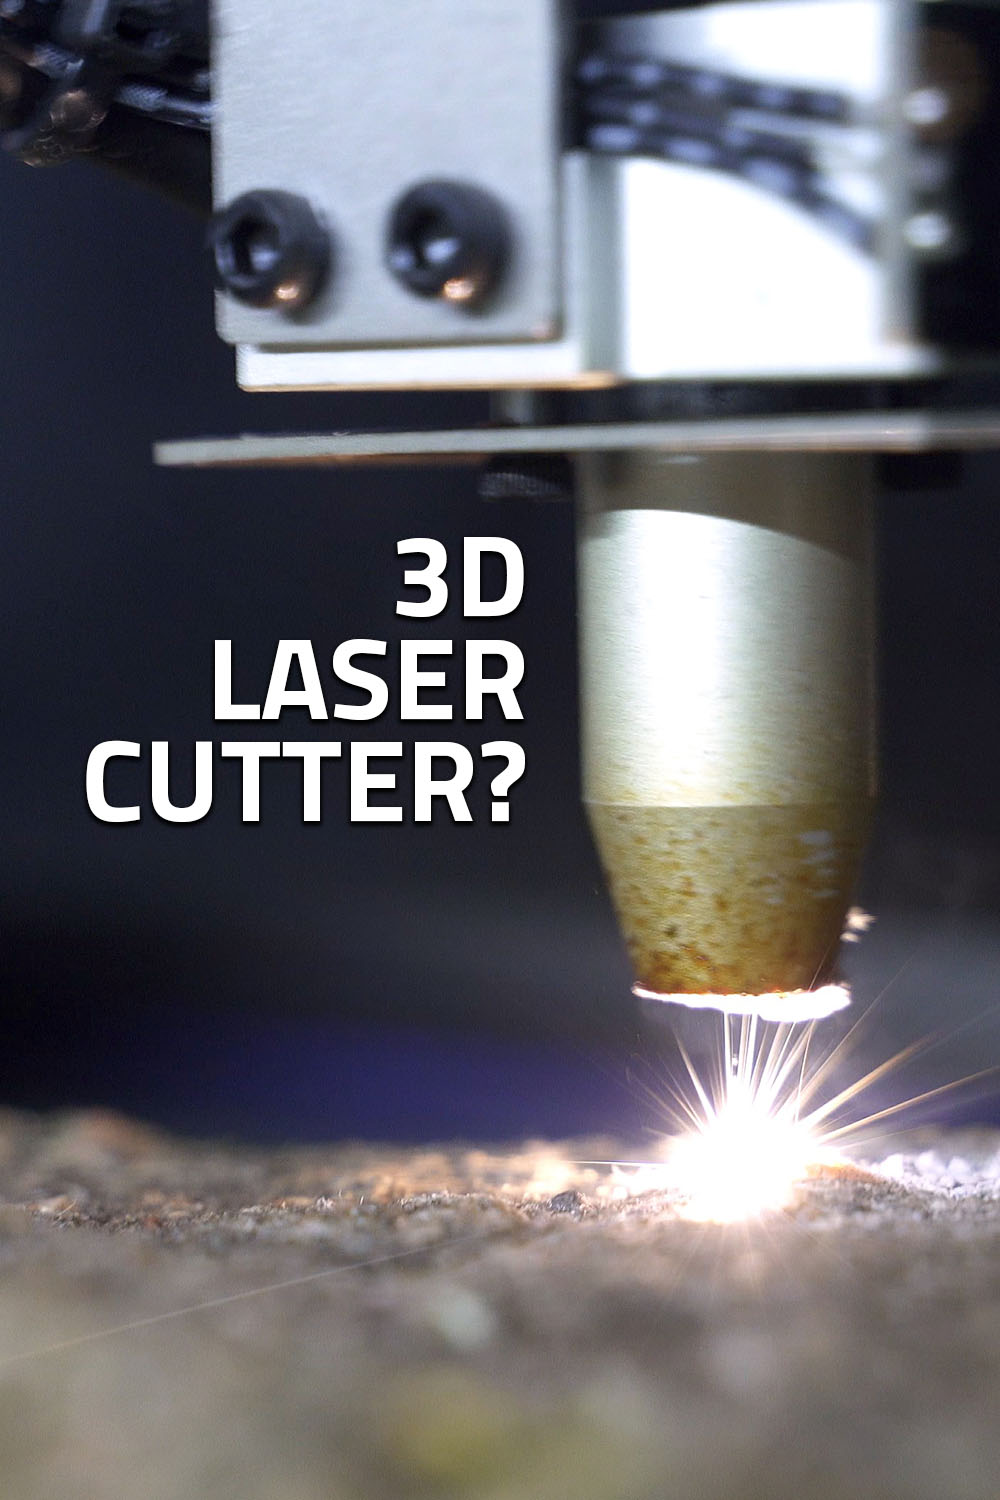 What is a 3D laser cutter? Full review of the Full Spectrum Muse 3D Laser Cutter and Engraver #laser #DIY #maker